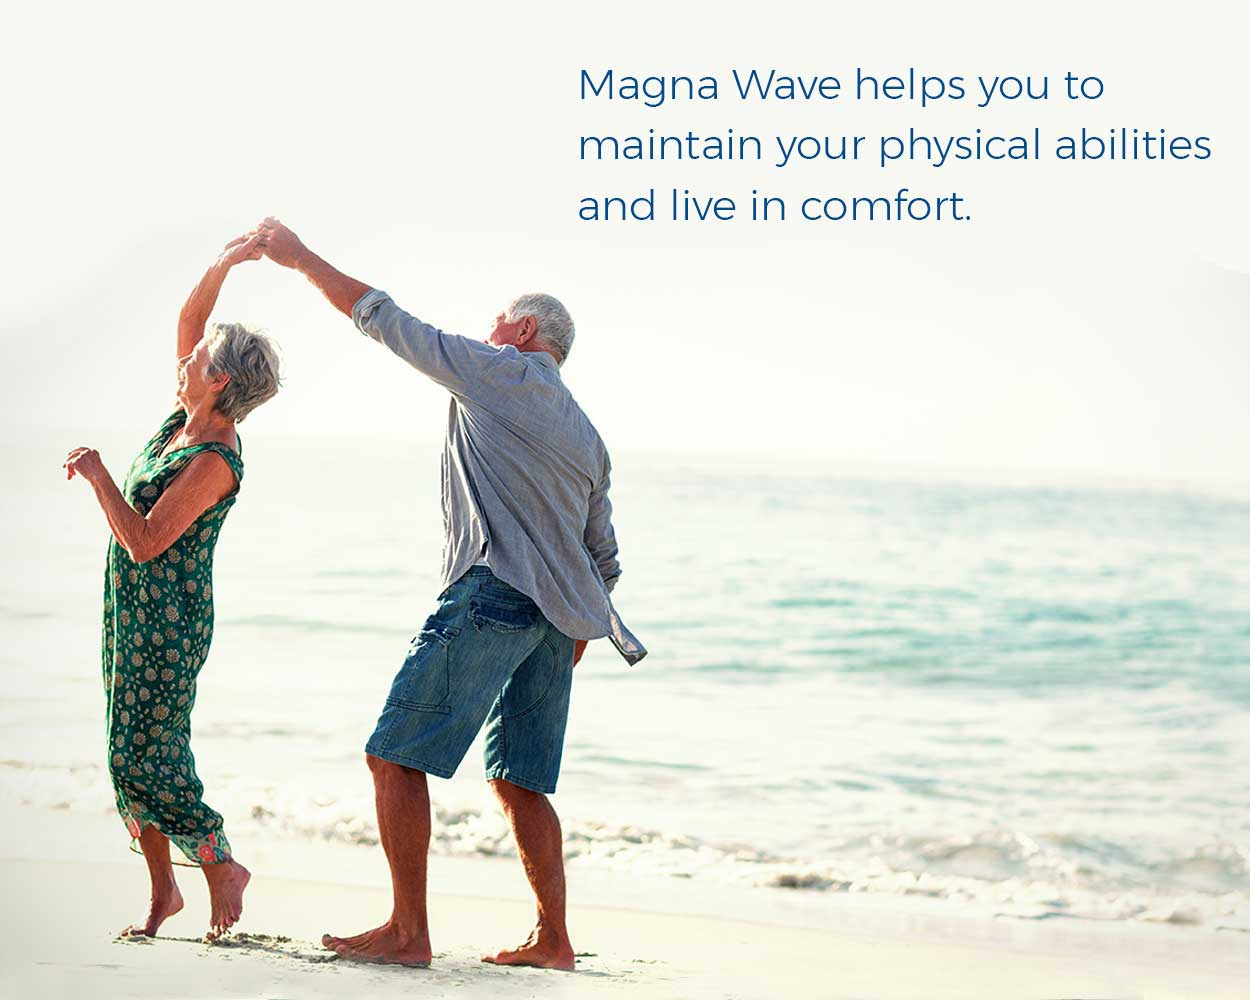 Magna Wave helps you to maintain your physical abilities and live in comfort.